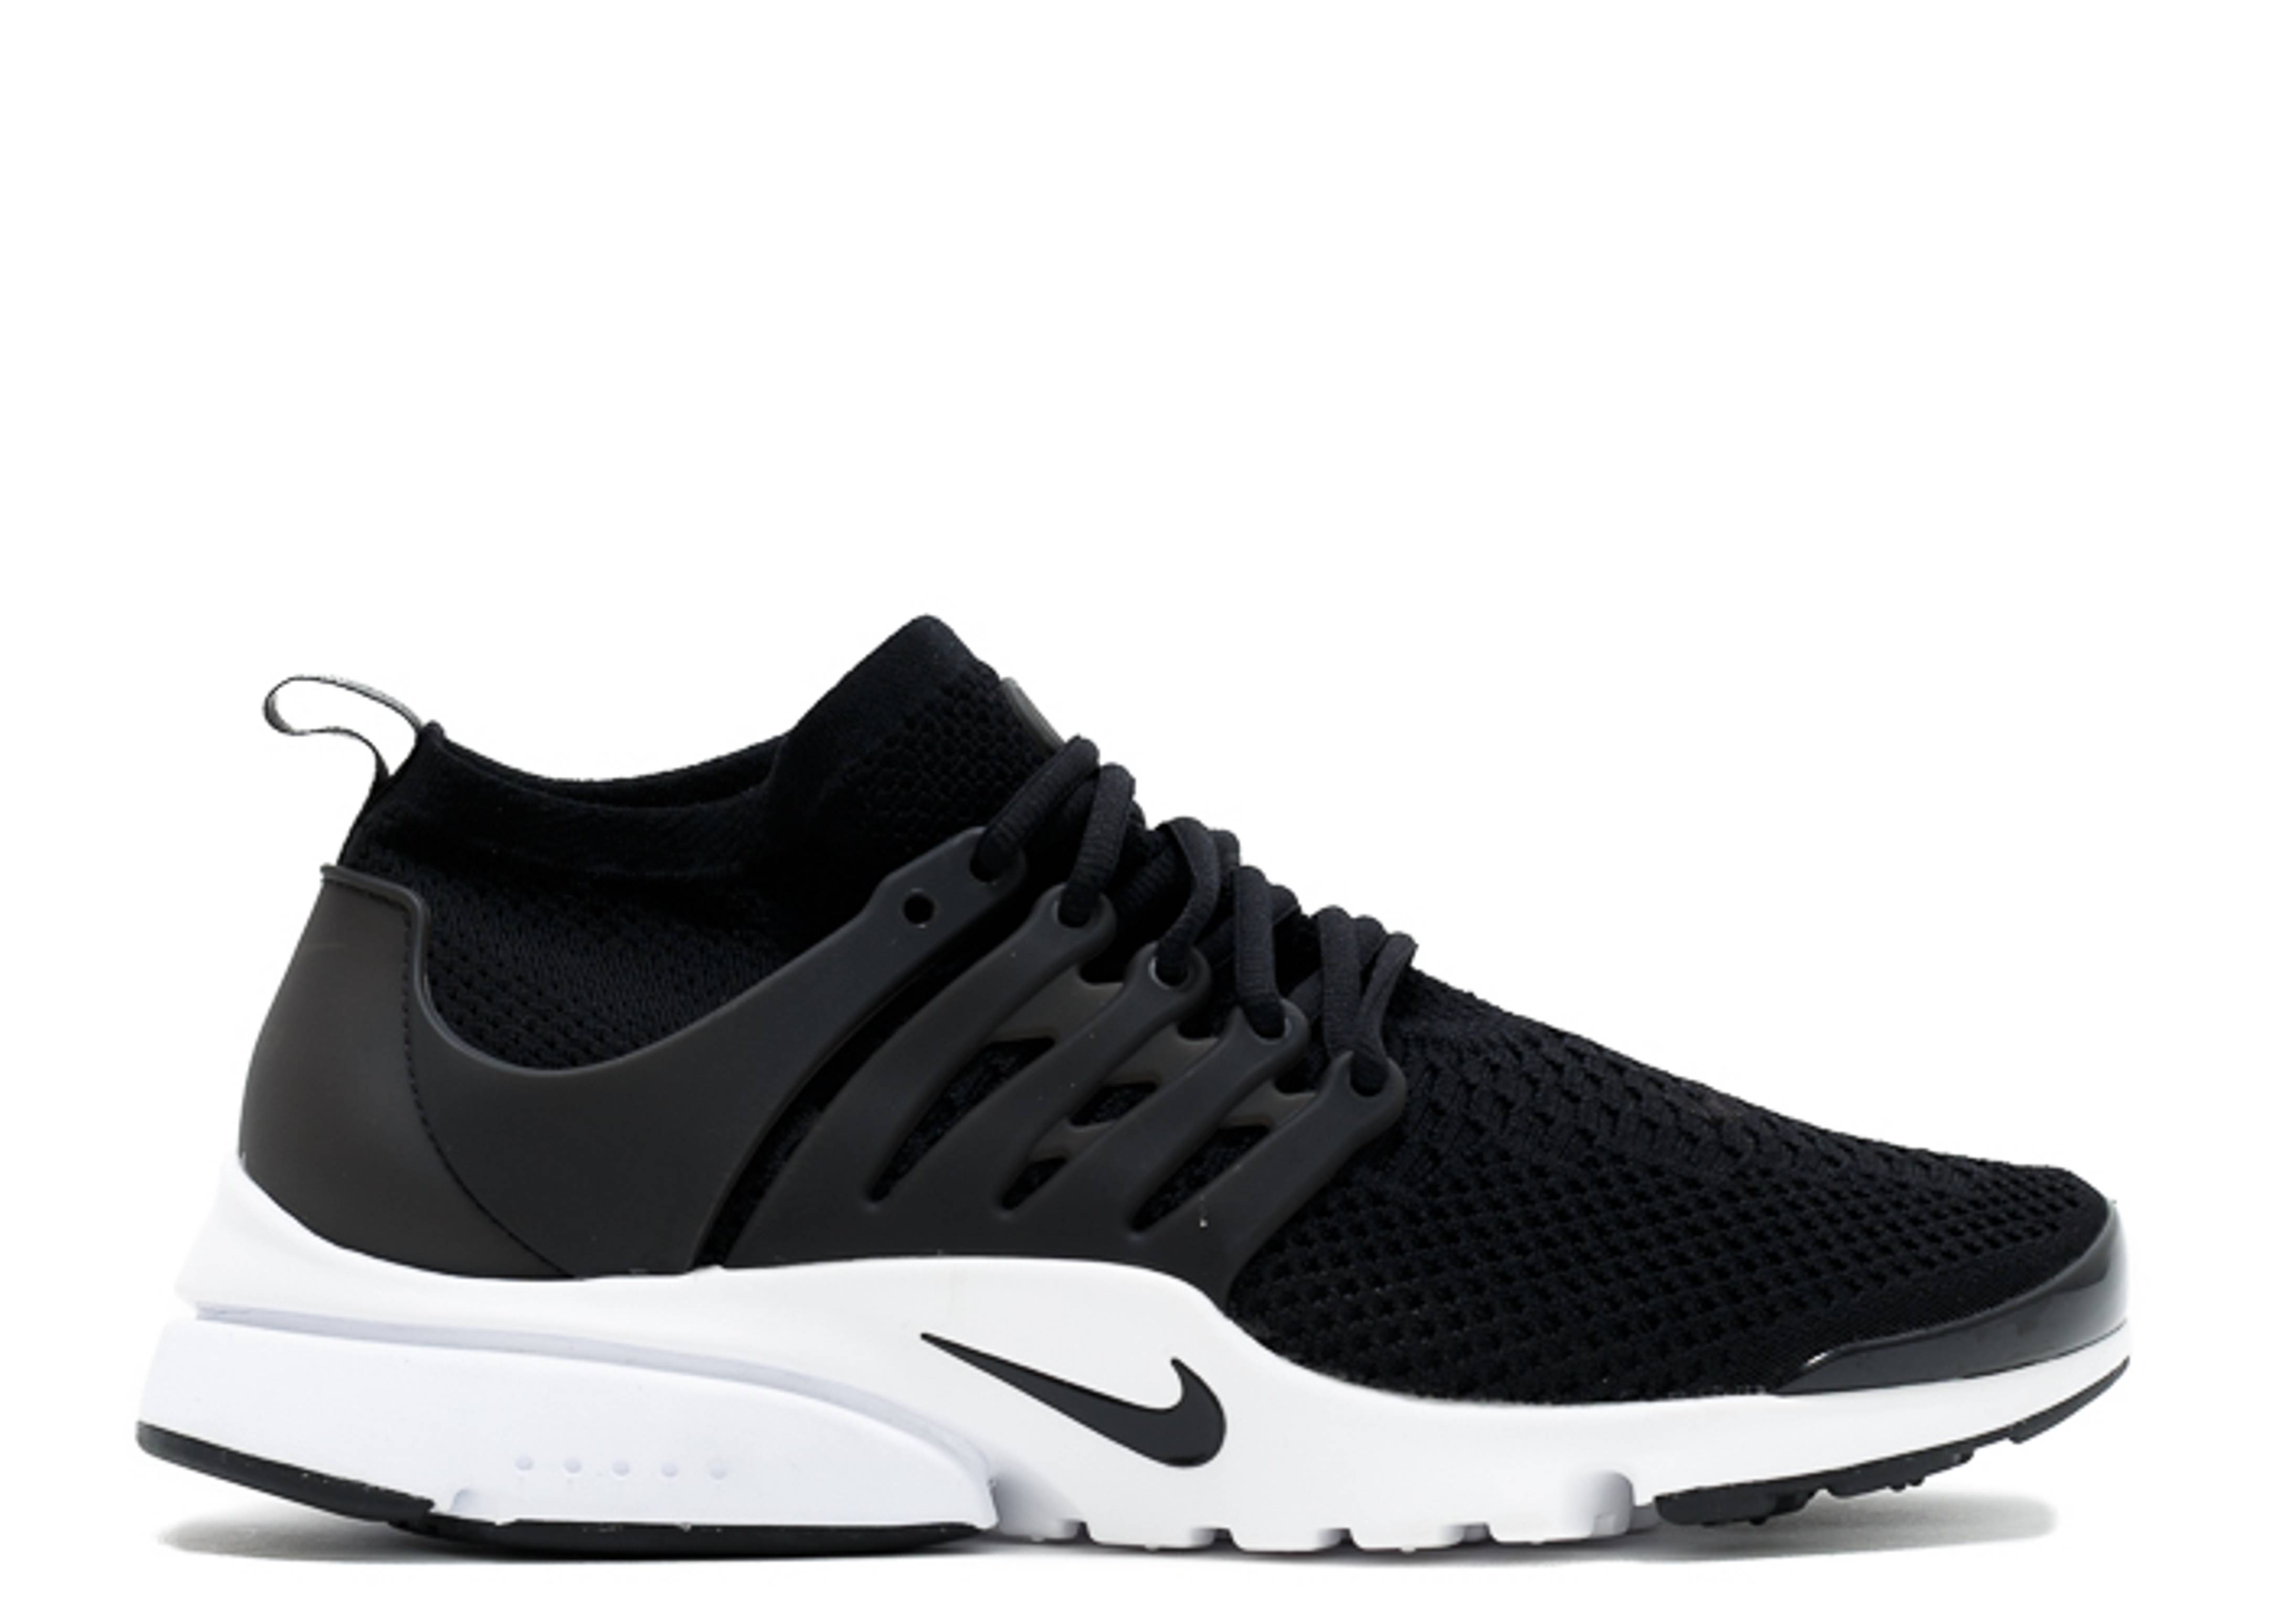 535d64f88151 Air Presto Flyknit Ultra - Nike - 835570 001 - black black-white ...